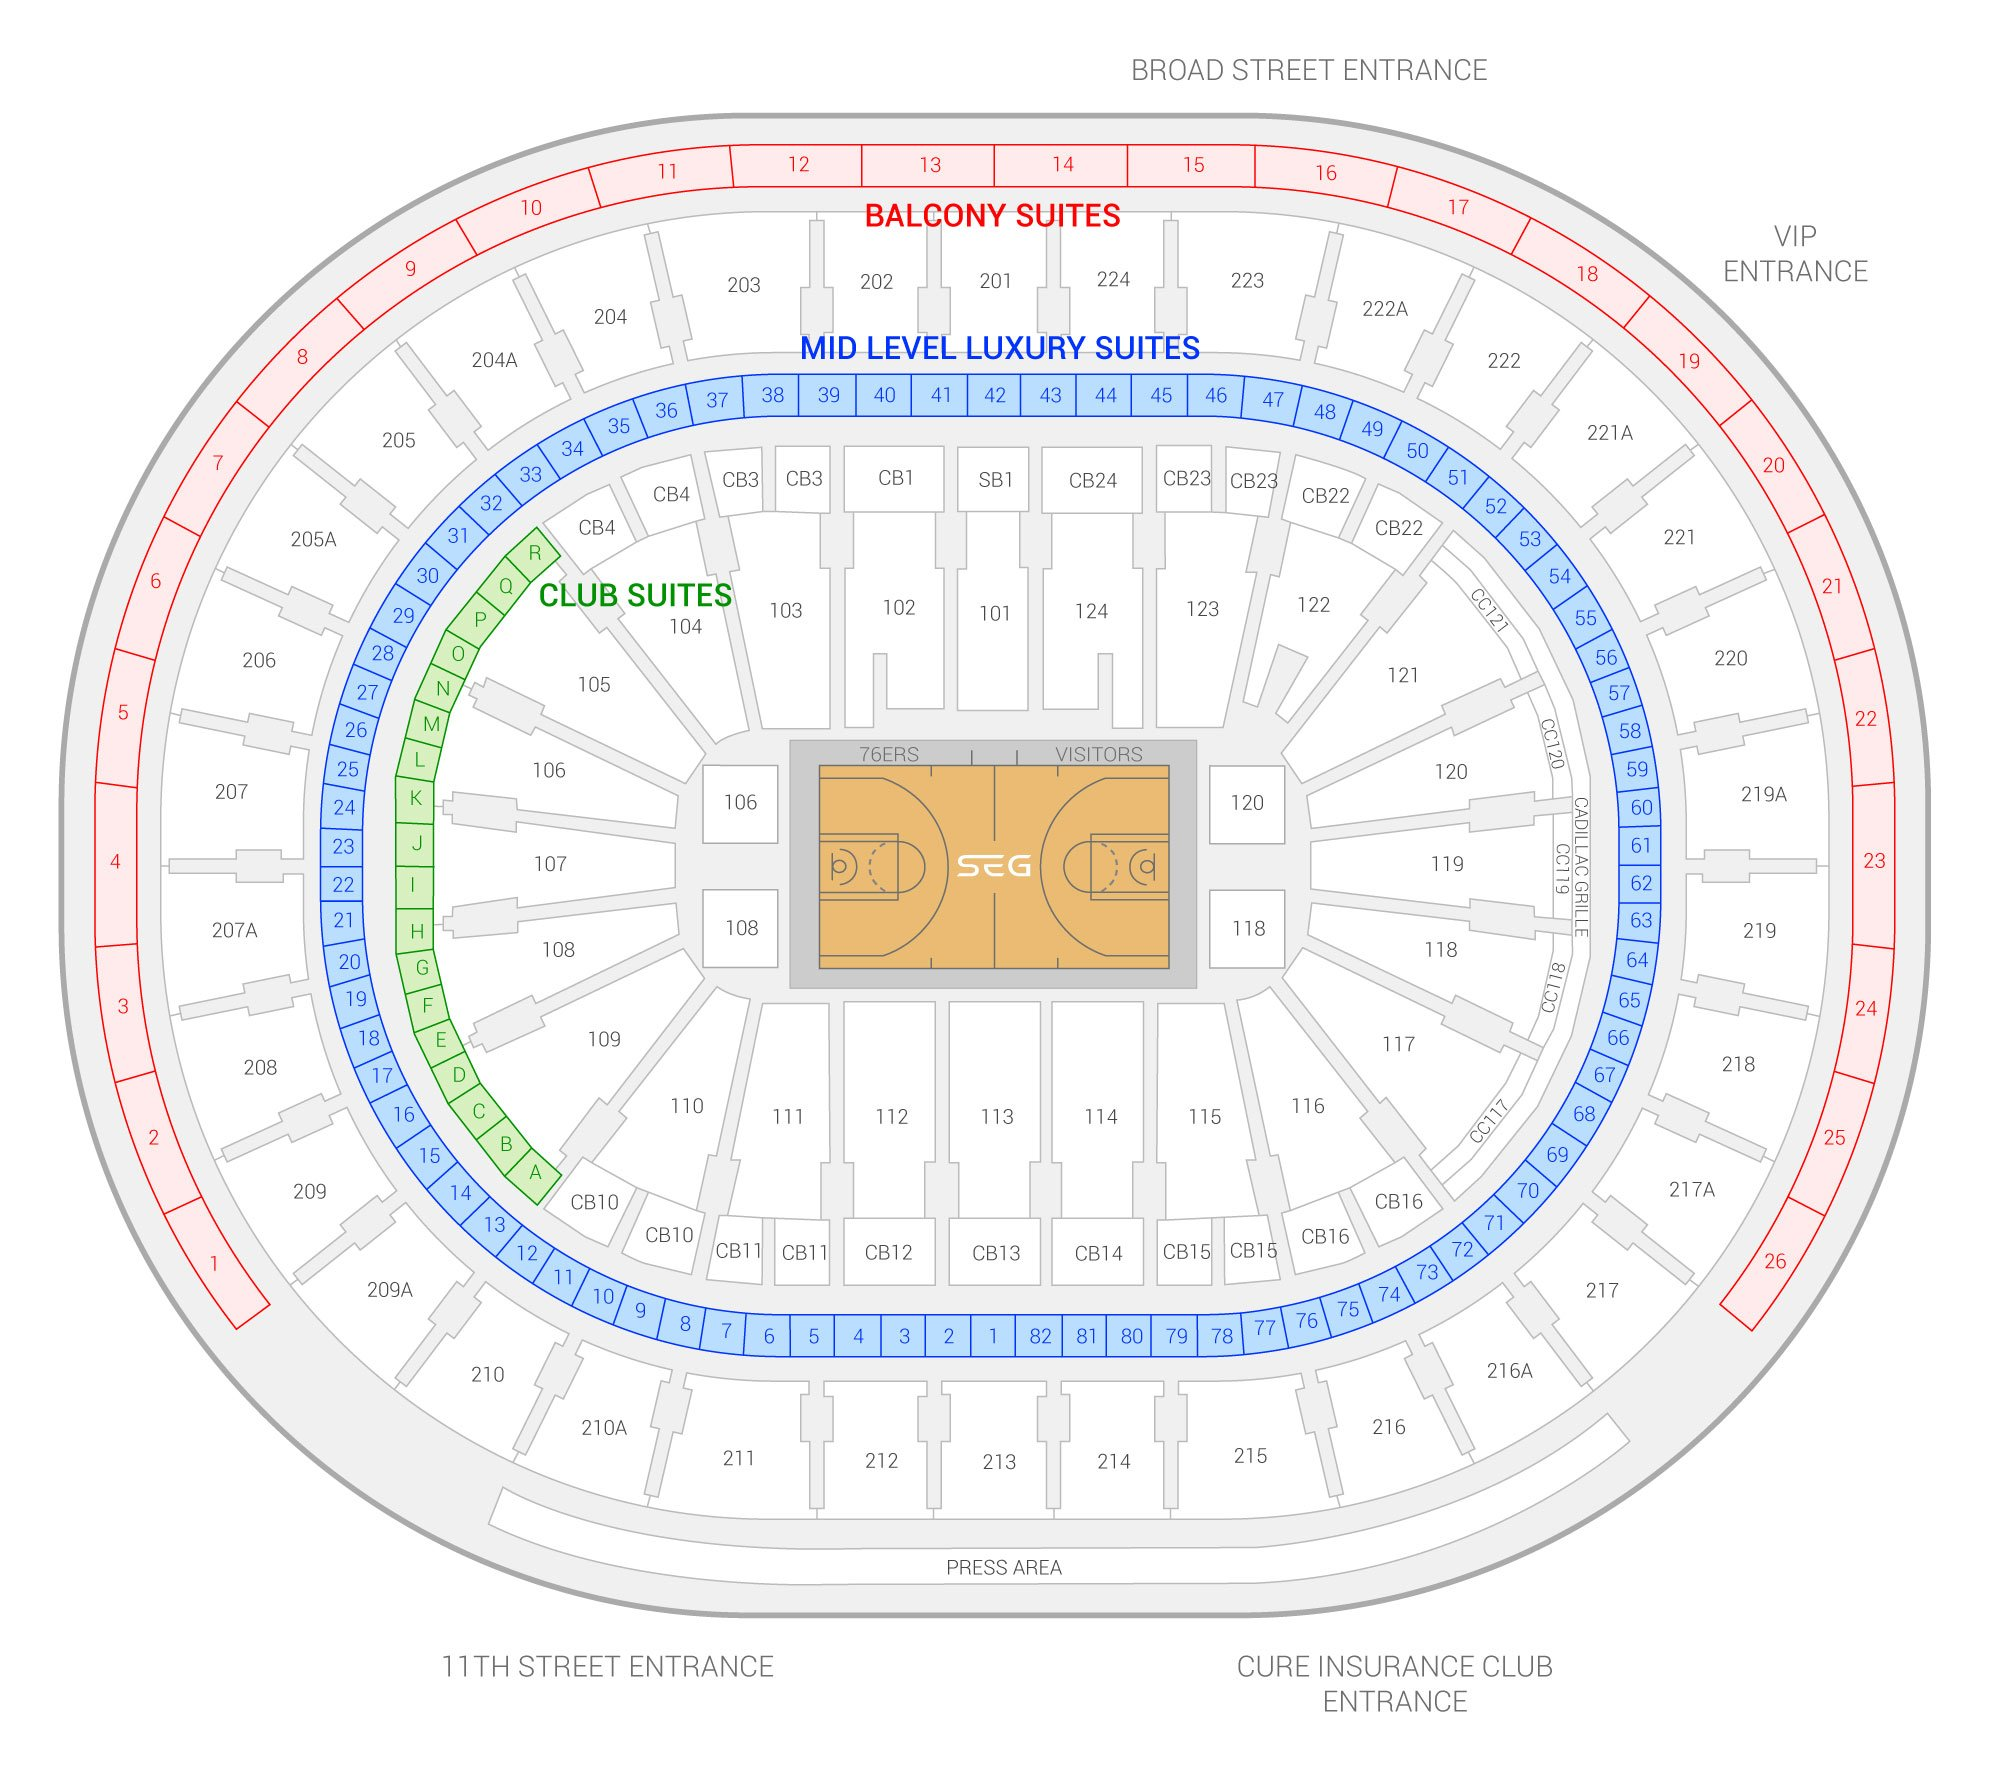 Wells Fargo Center / Philadelphia 76ers Suite Map and Seating Chart